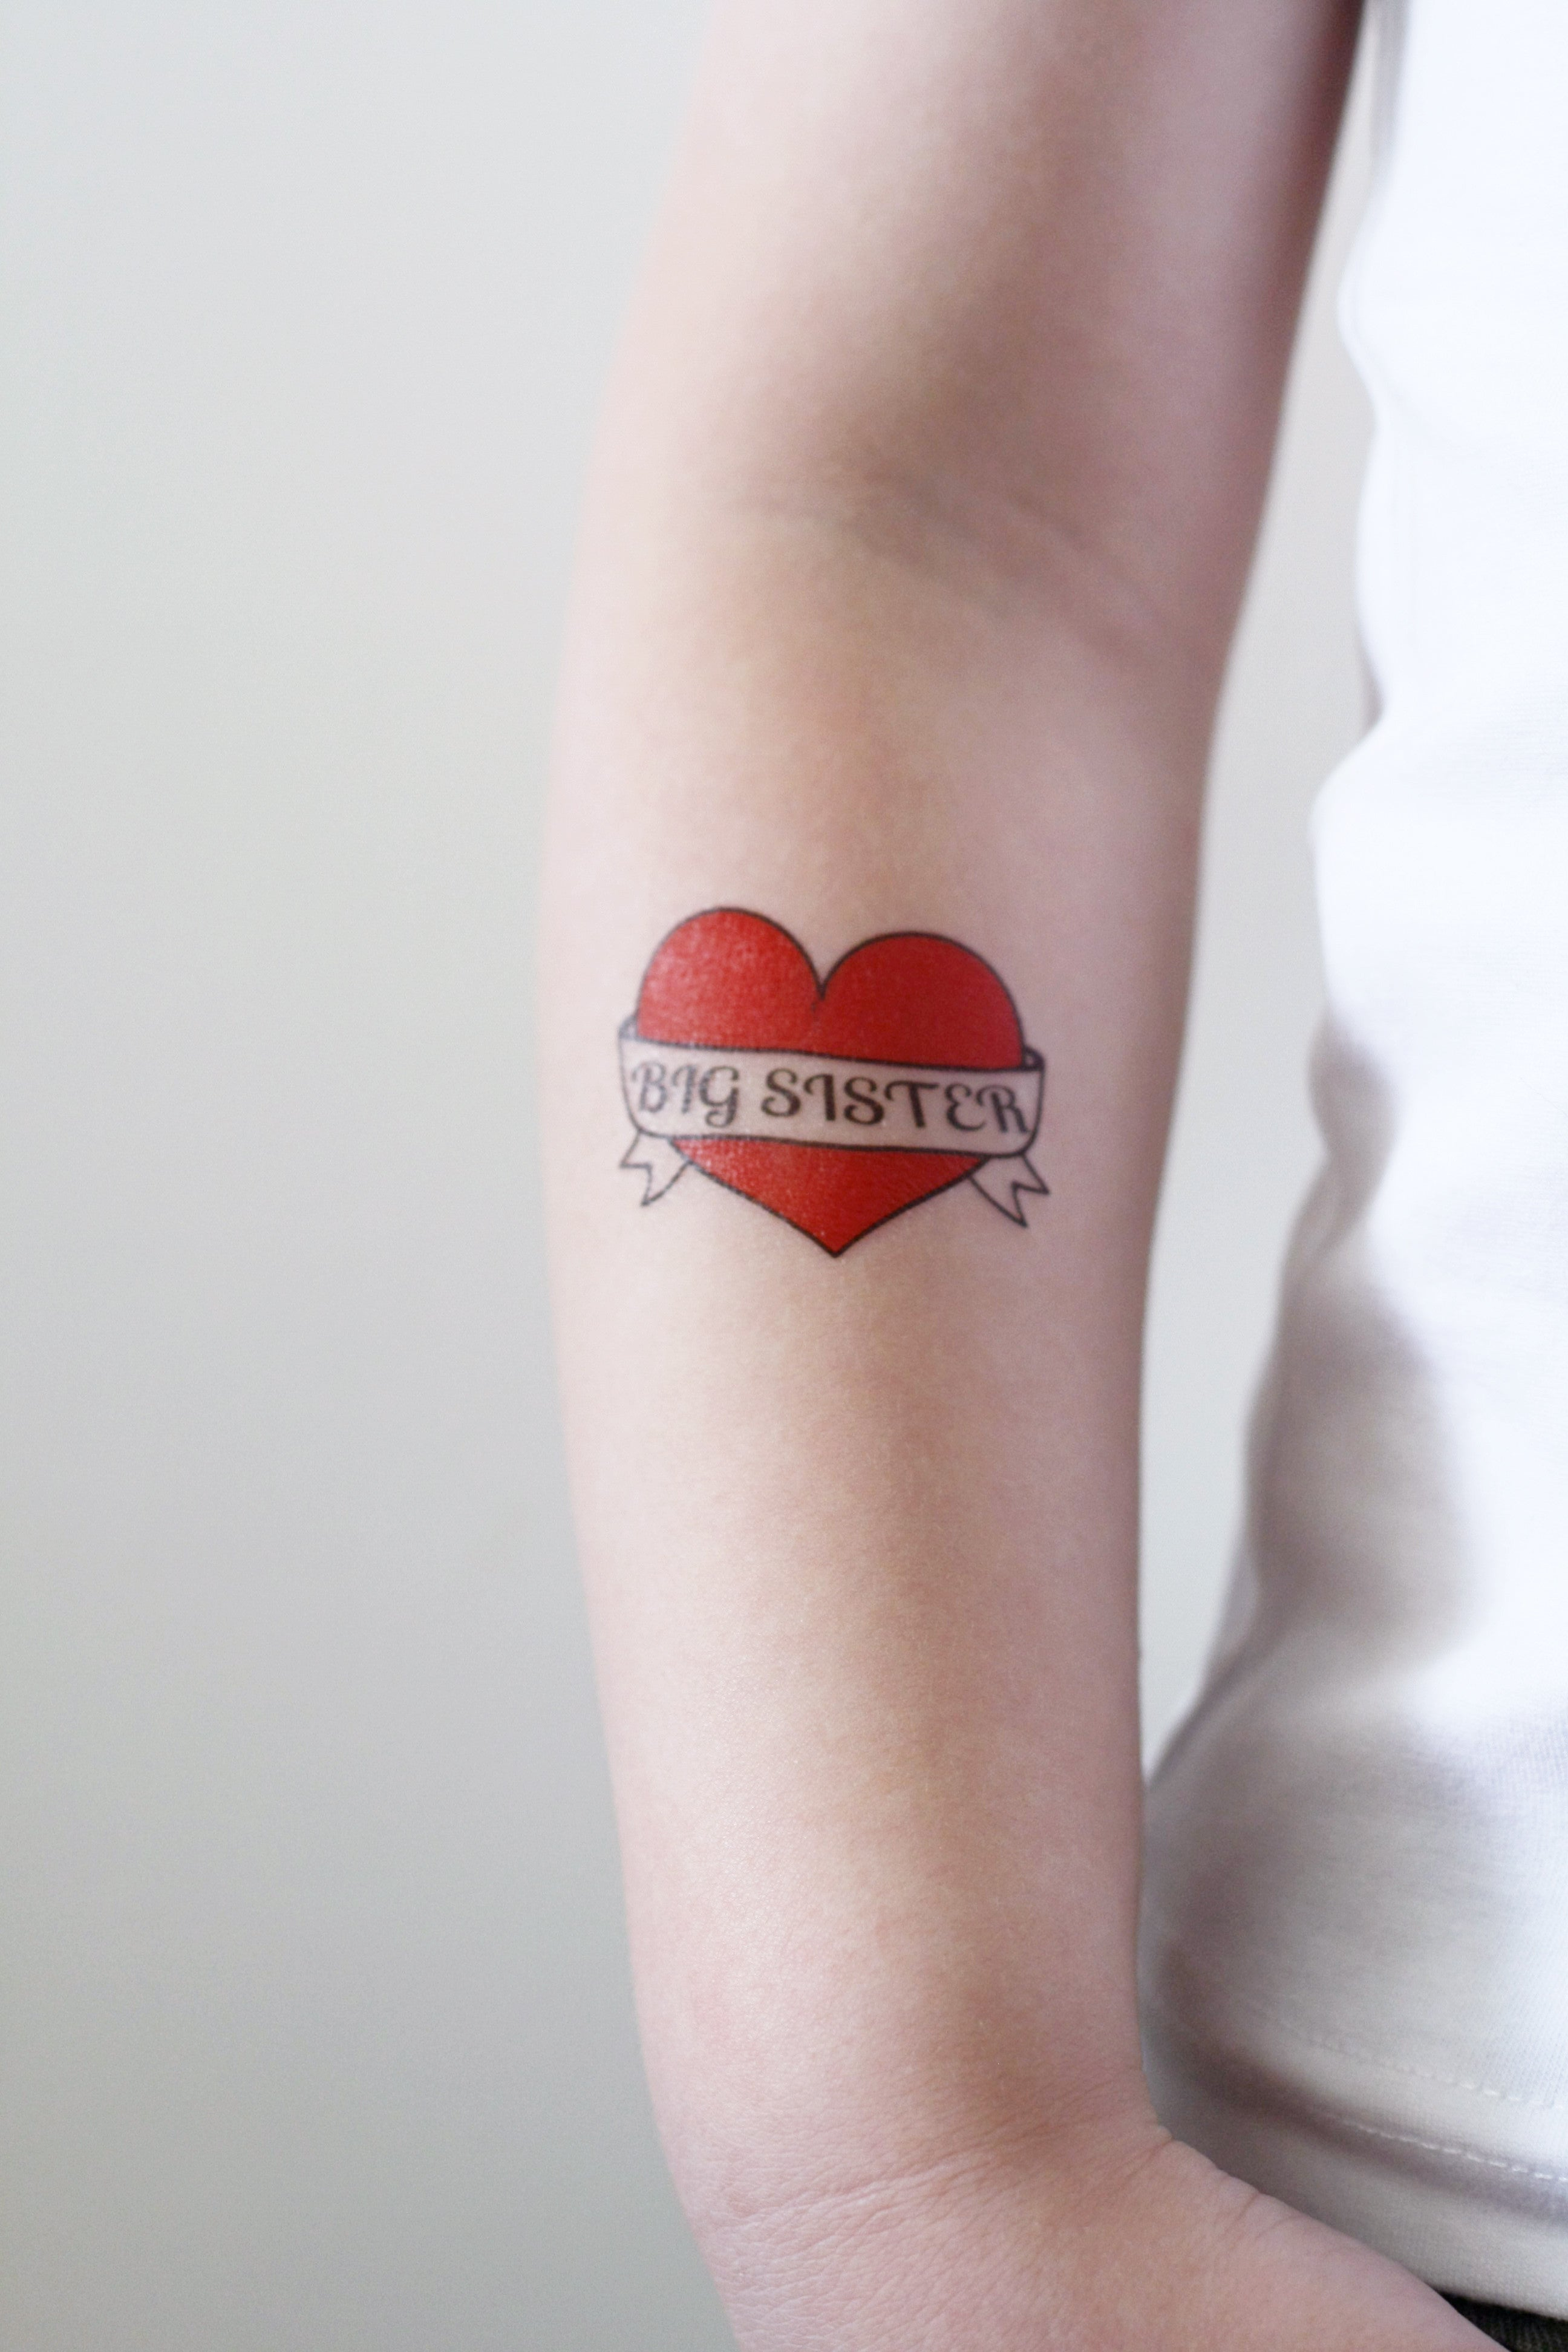 sister temporary tattoo tattoos tattoorary little